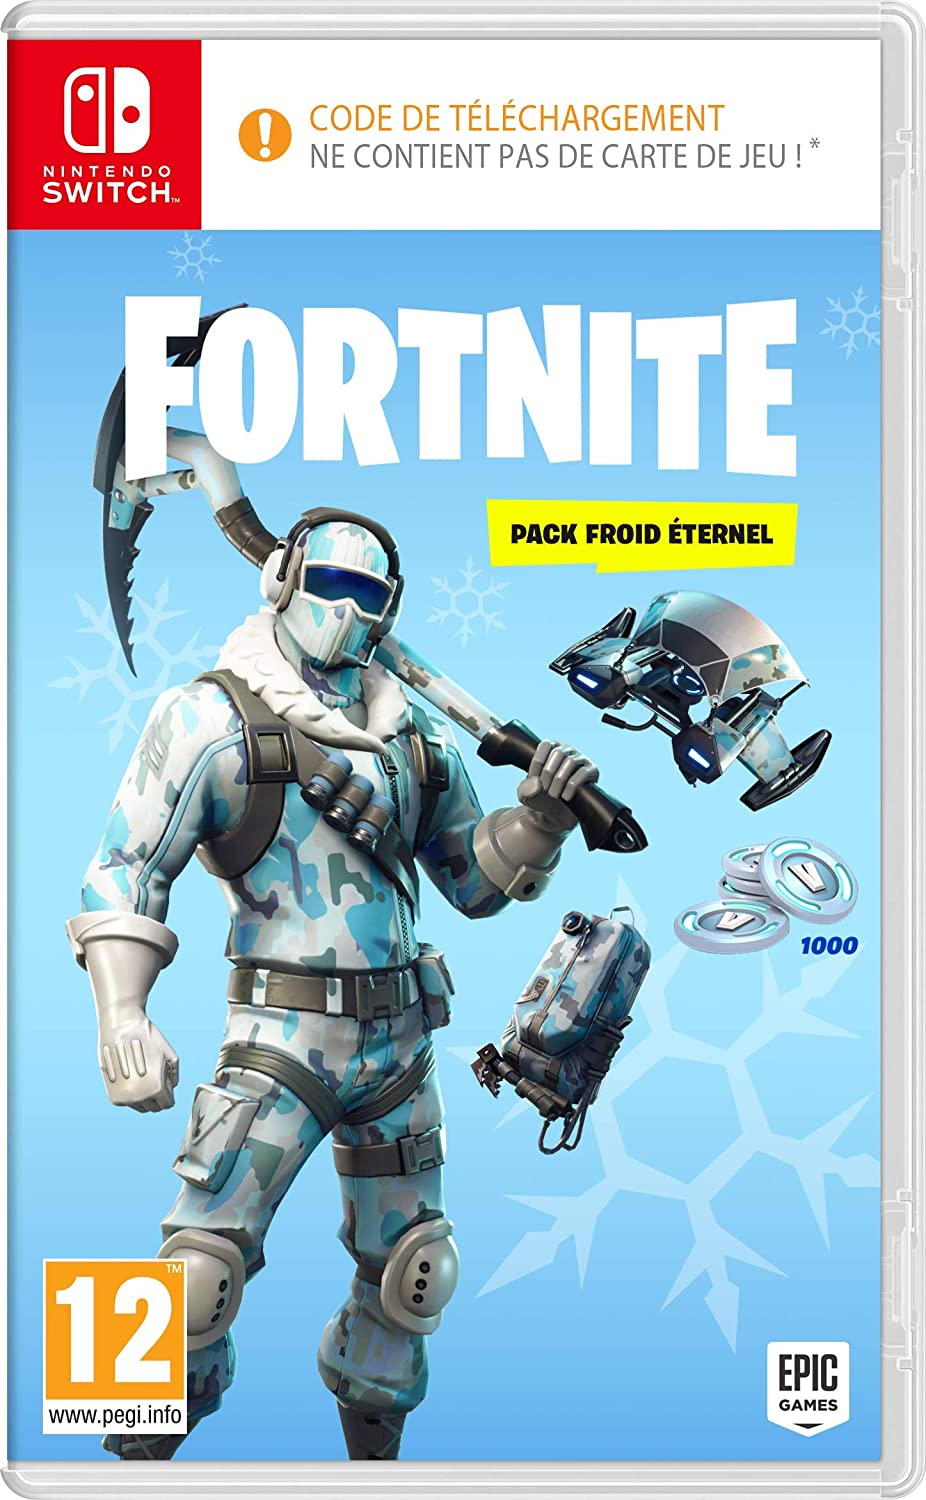 Calendrier Jeux Switch.Fortnite Pack Froid Eternel Code De Telechargement Sans